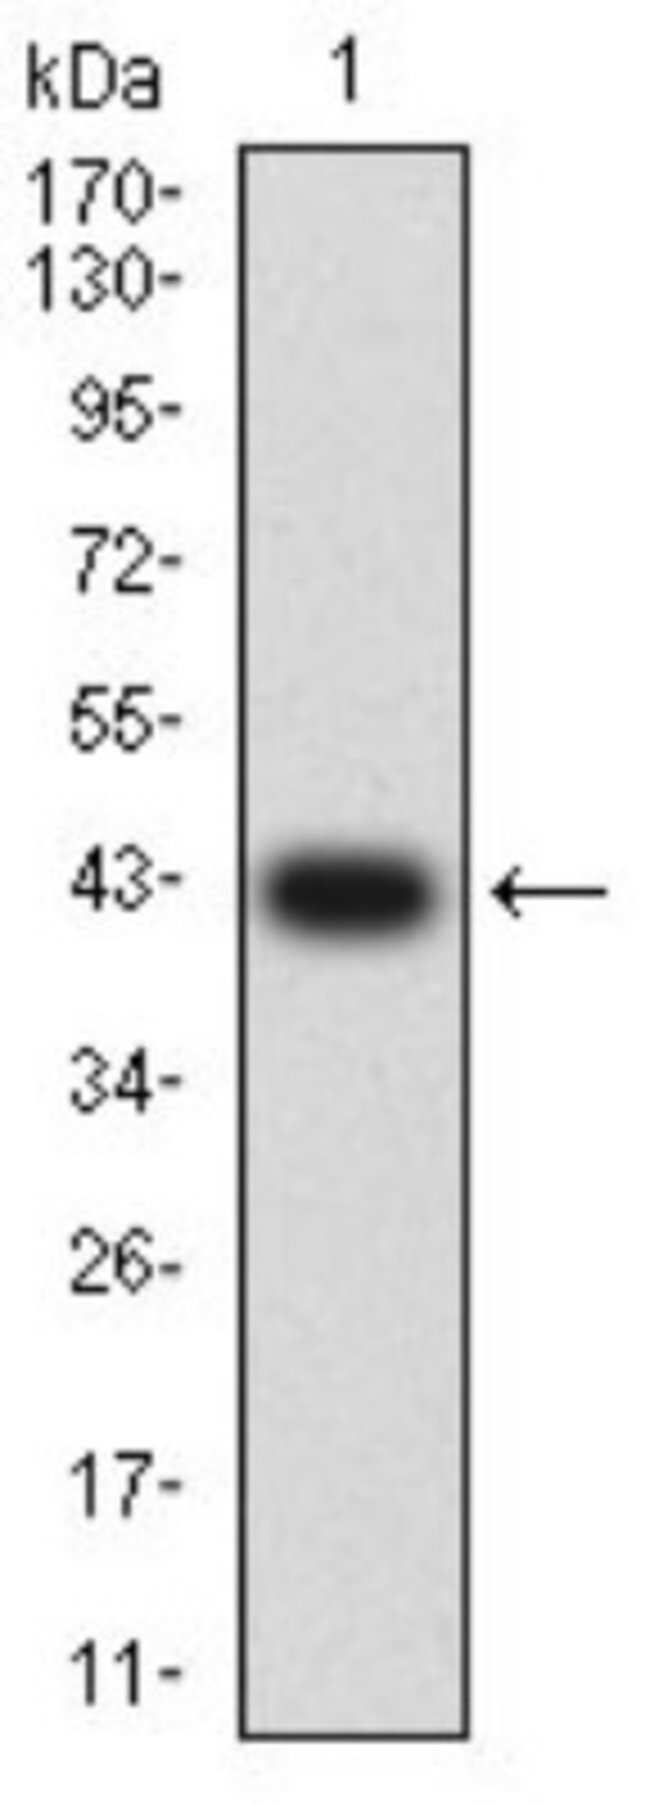 mGluR2 Mouse anti-Human, Clone: 4A10B9, Novus Biologicals 0.1 ml; Unconjugated:Antibodies